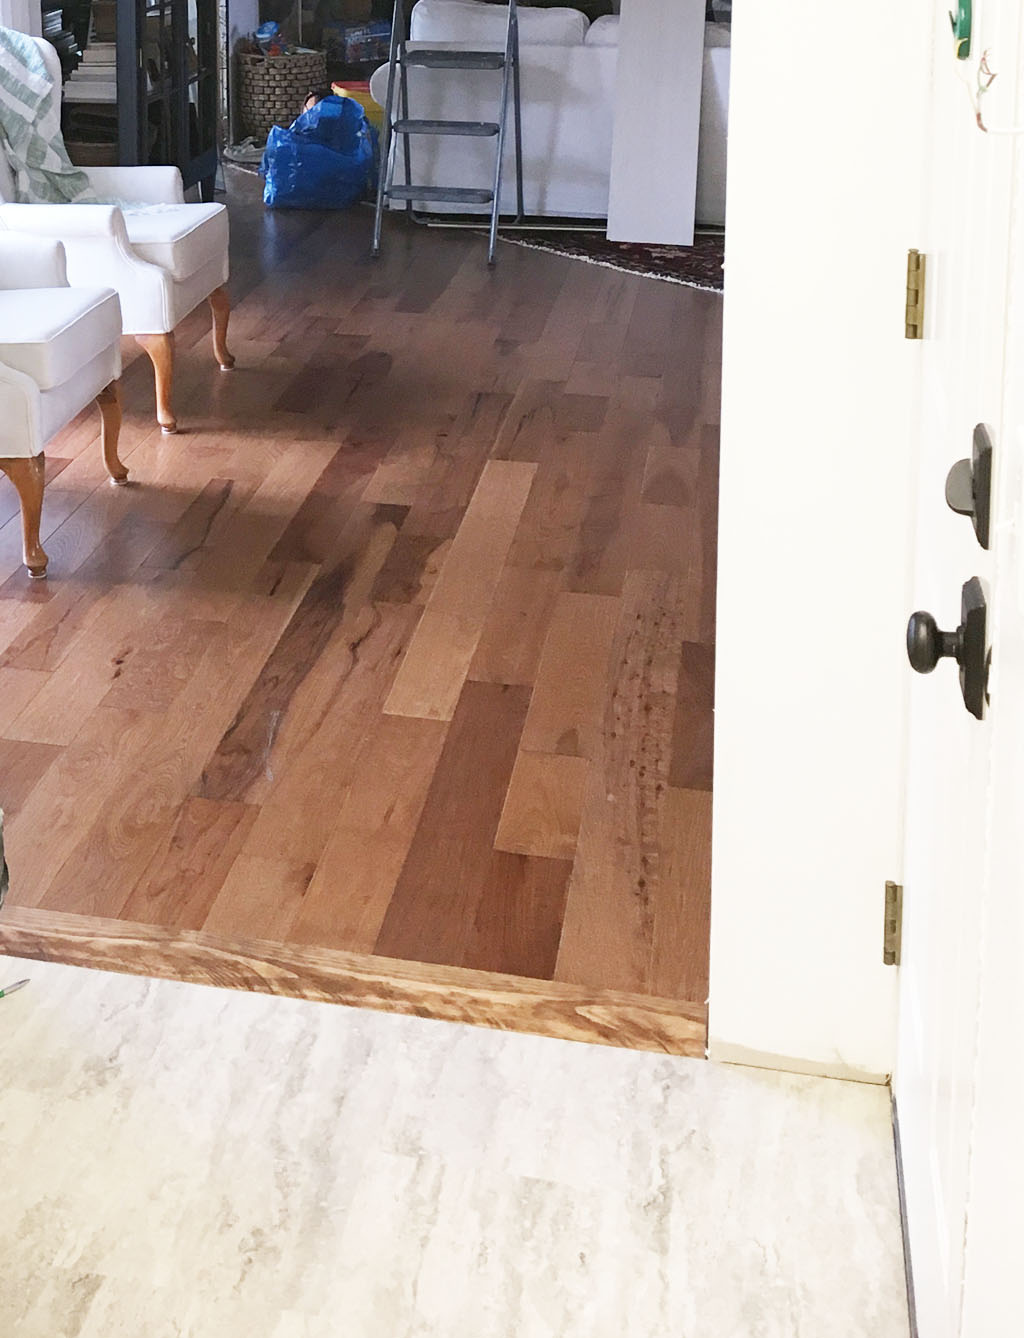 Mudroom tile to hardwood flooring transition